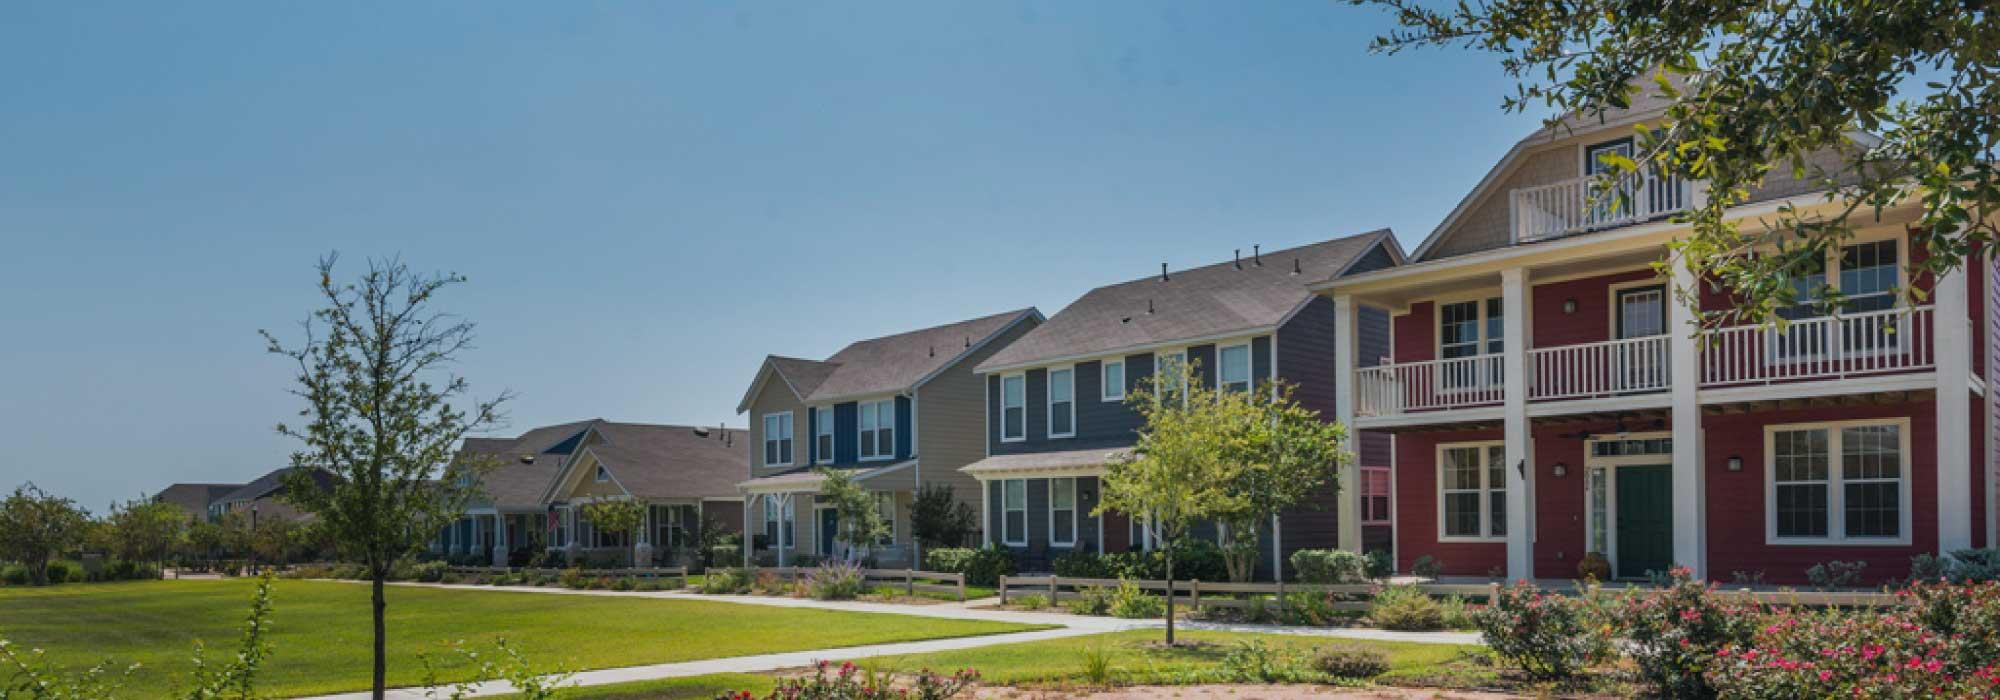 Creekside Community, by Bigelow Homes